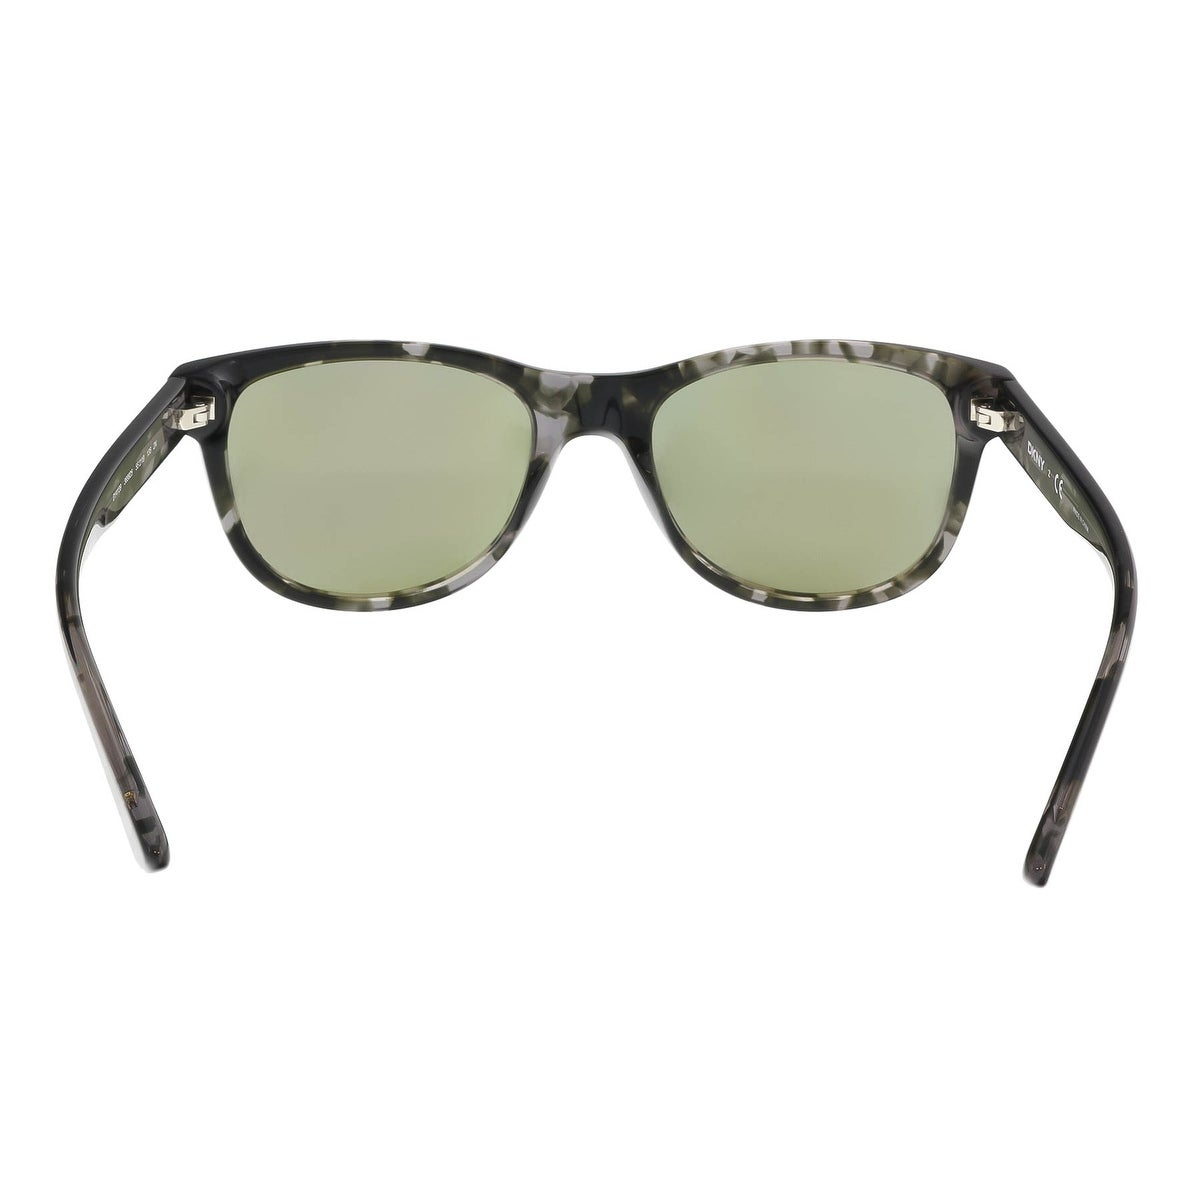 54be8447f08c Shop DKNY DY4139 369925 Black/Gray Cat Eye Sunglasses - 55-19-135 - Free  Shipping On Orders Over $45 - Overstock - 18182577